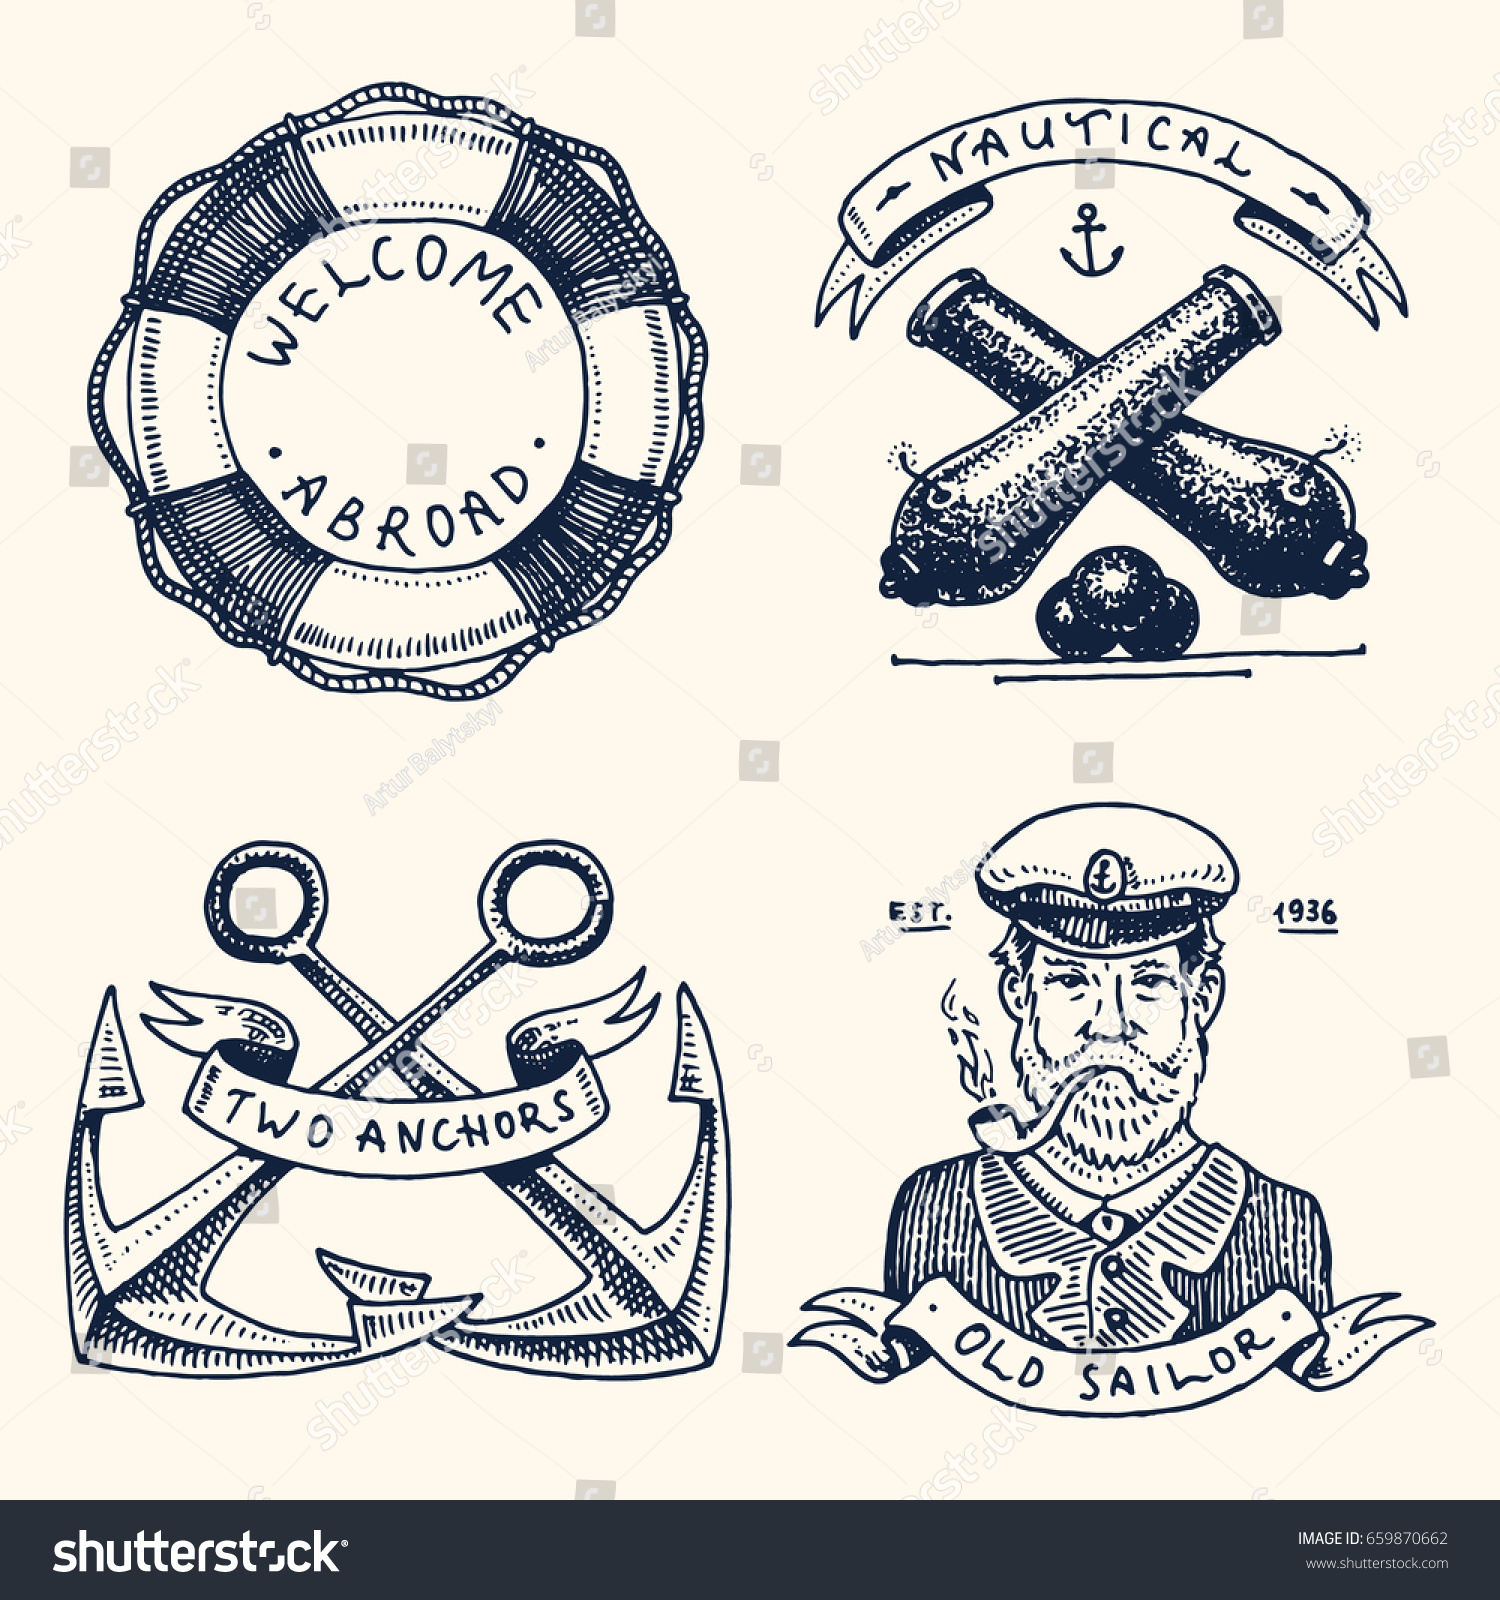 Welcome aboard boat ships life ring clock - Set Of Engraved Vintage Hand Drawn Old Labels Or Badges For A Life